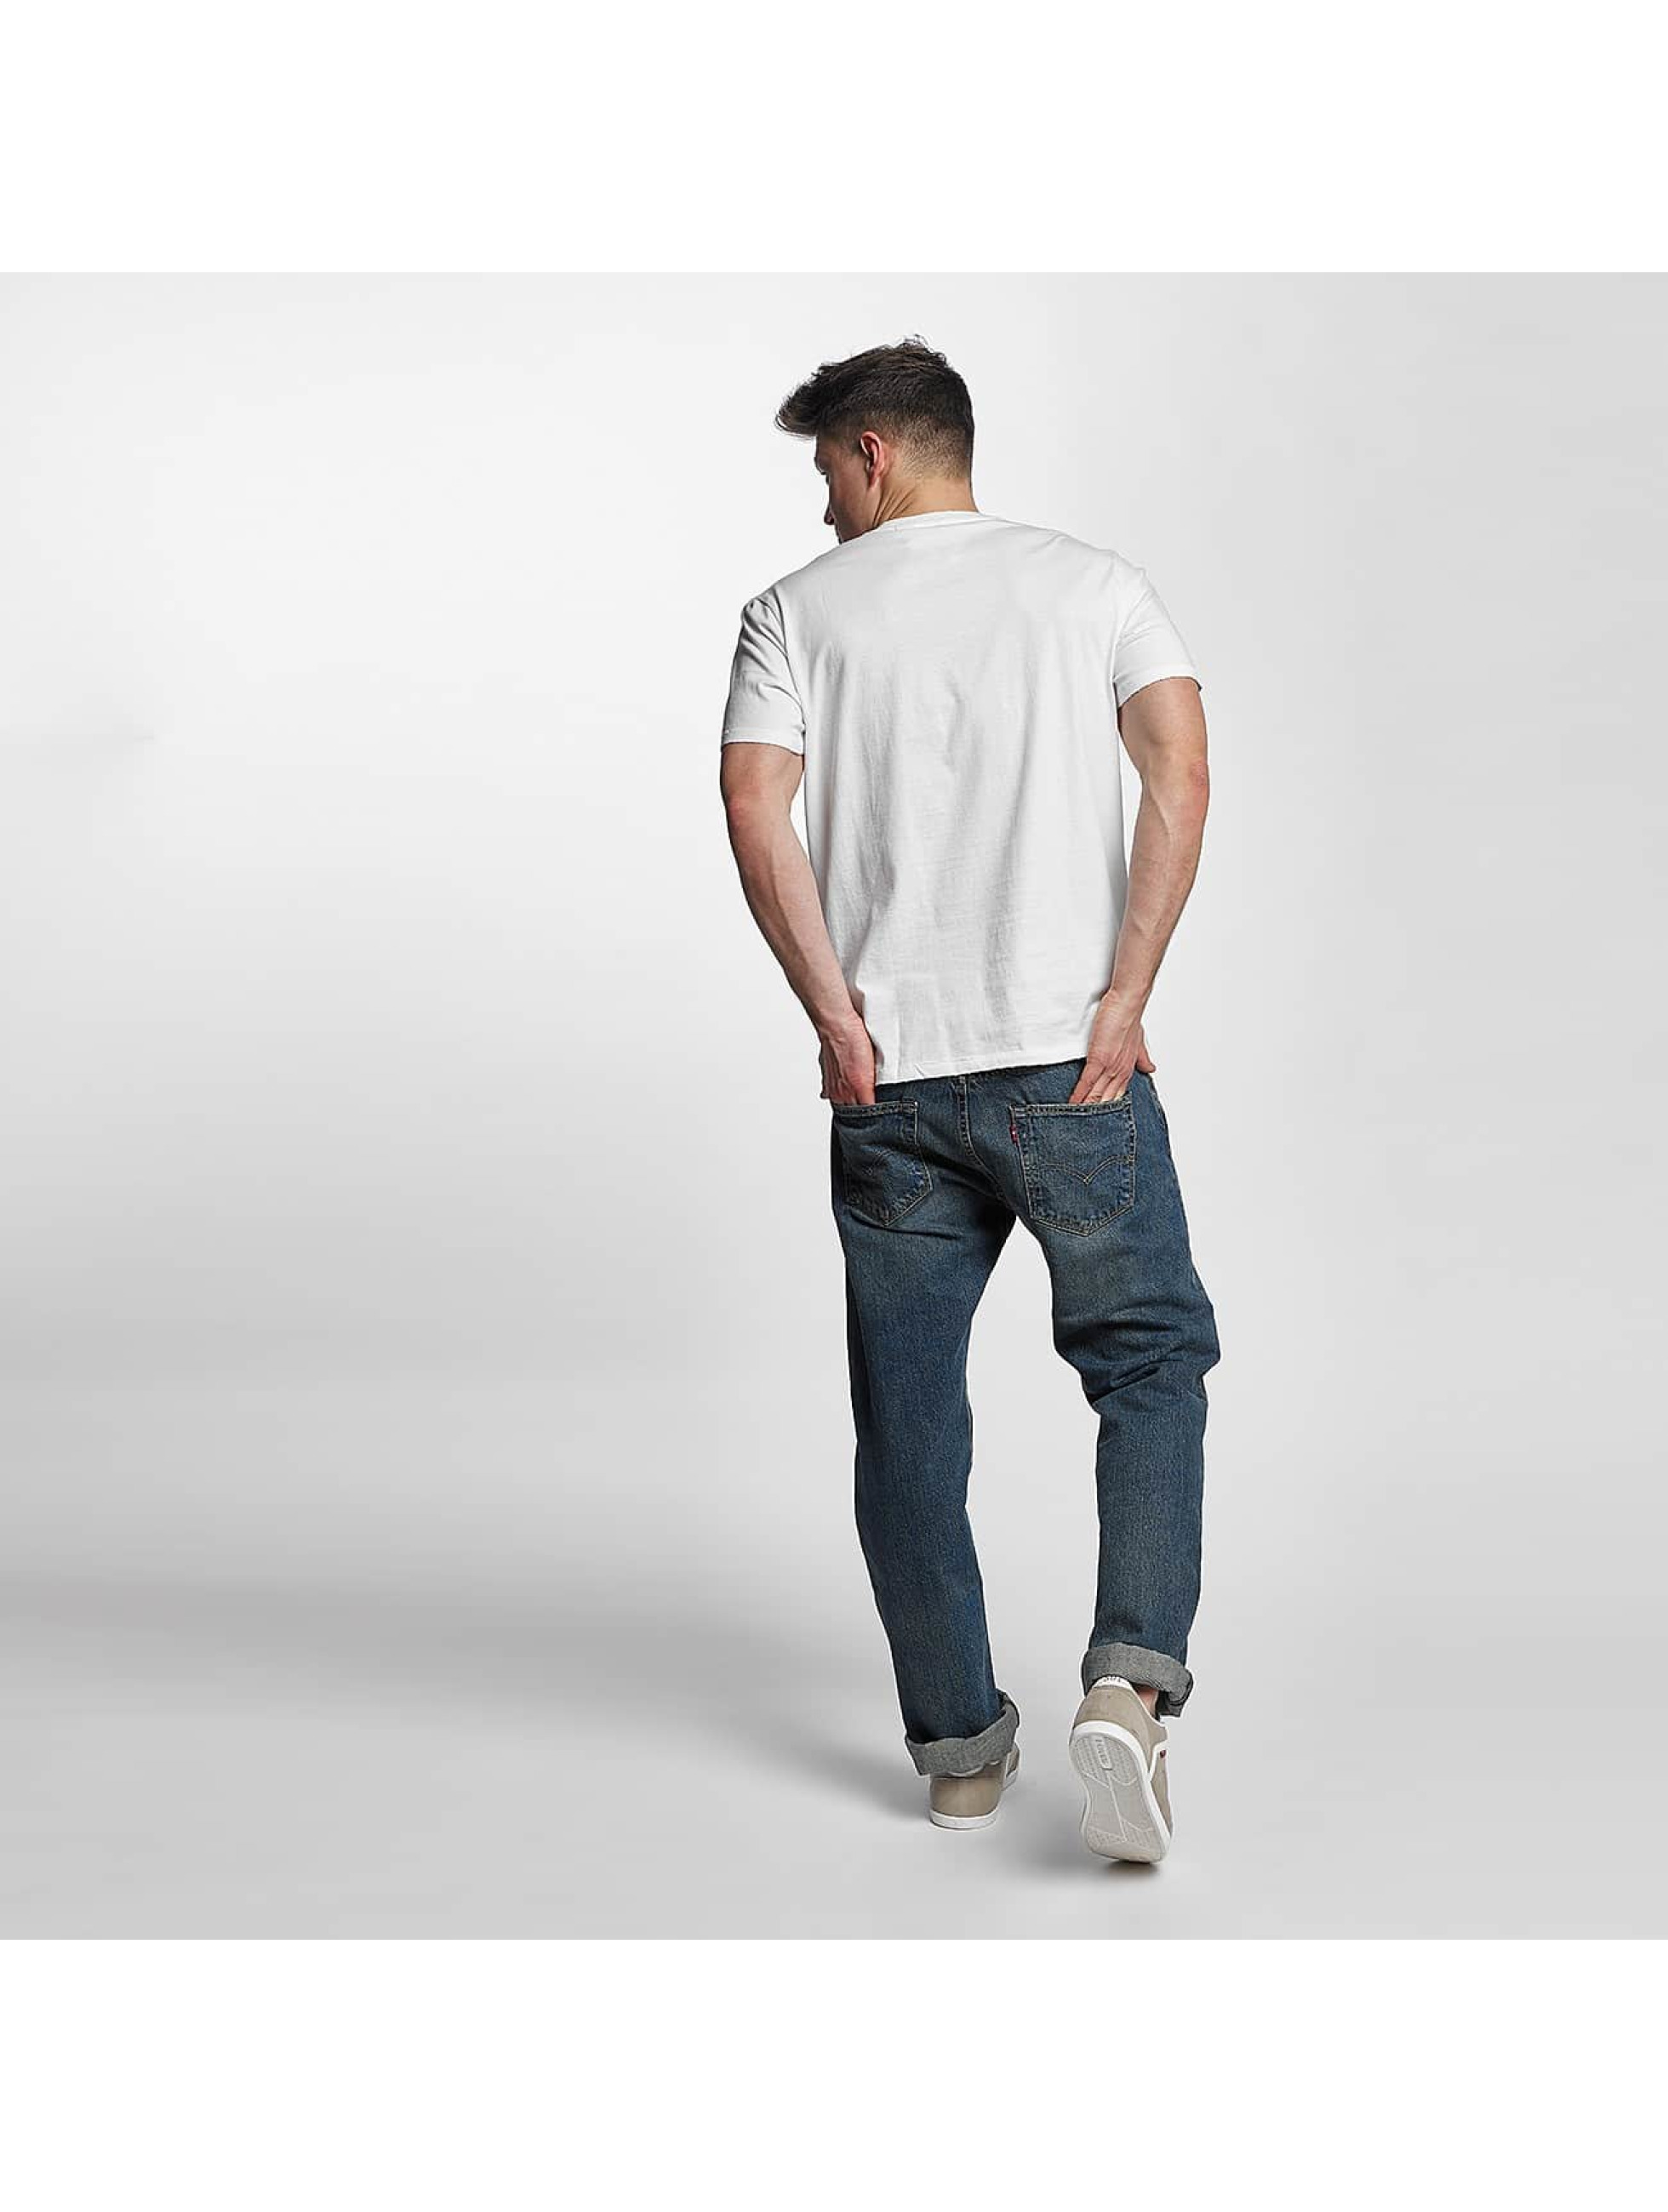 Levi's® T-Shirt Housemark Graphic white